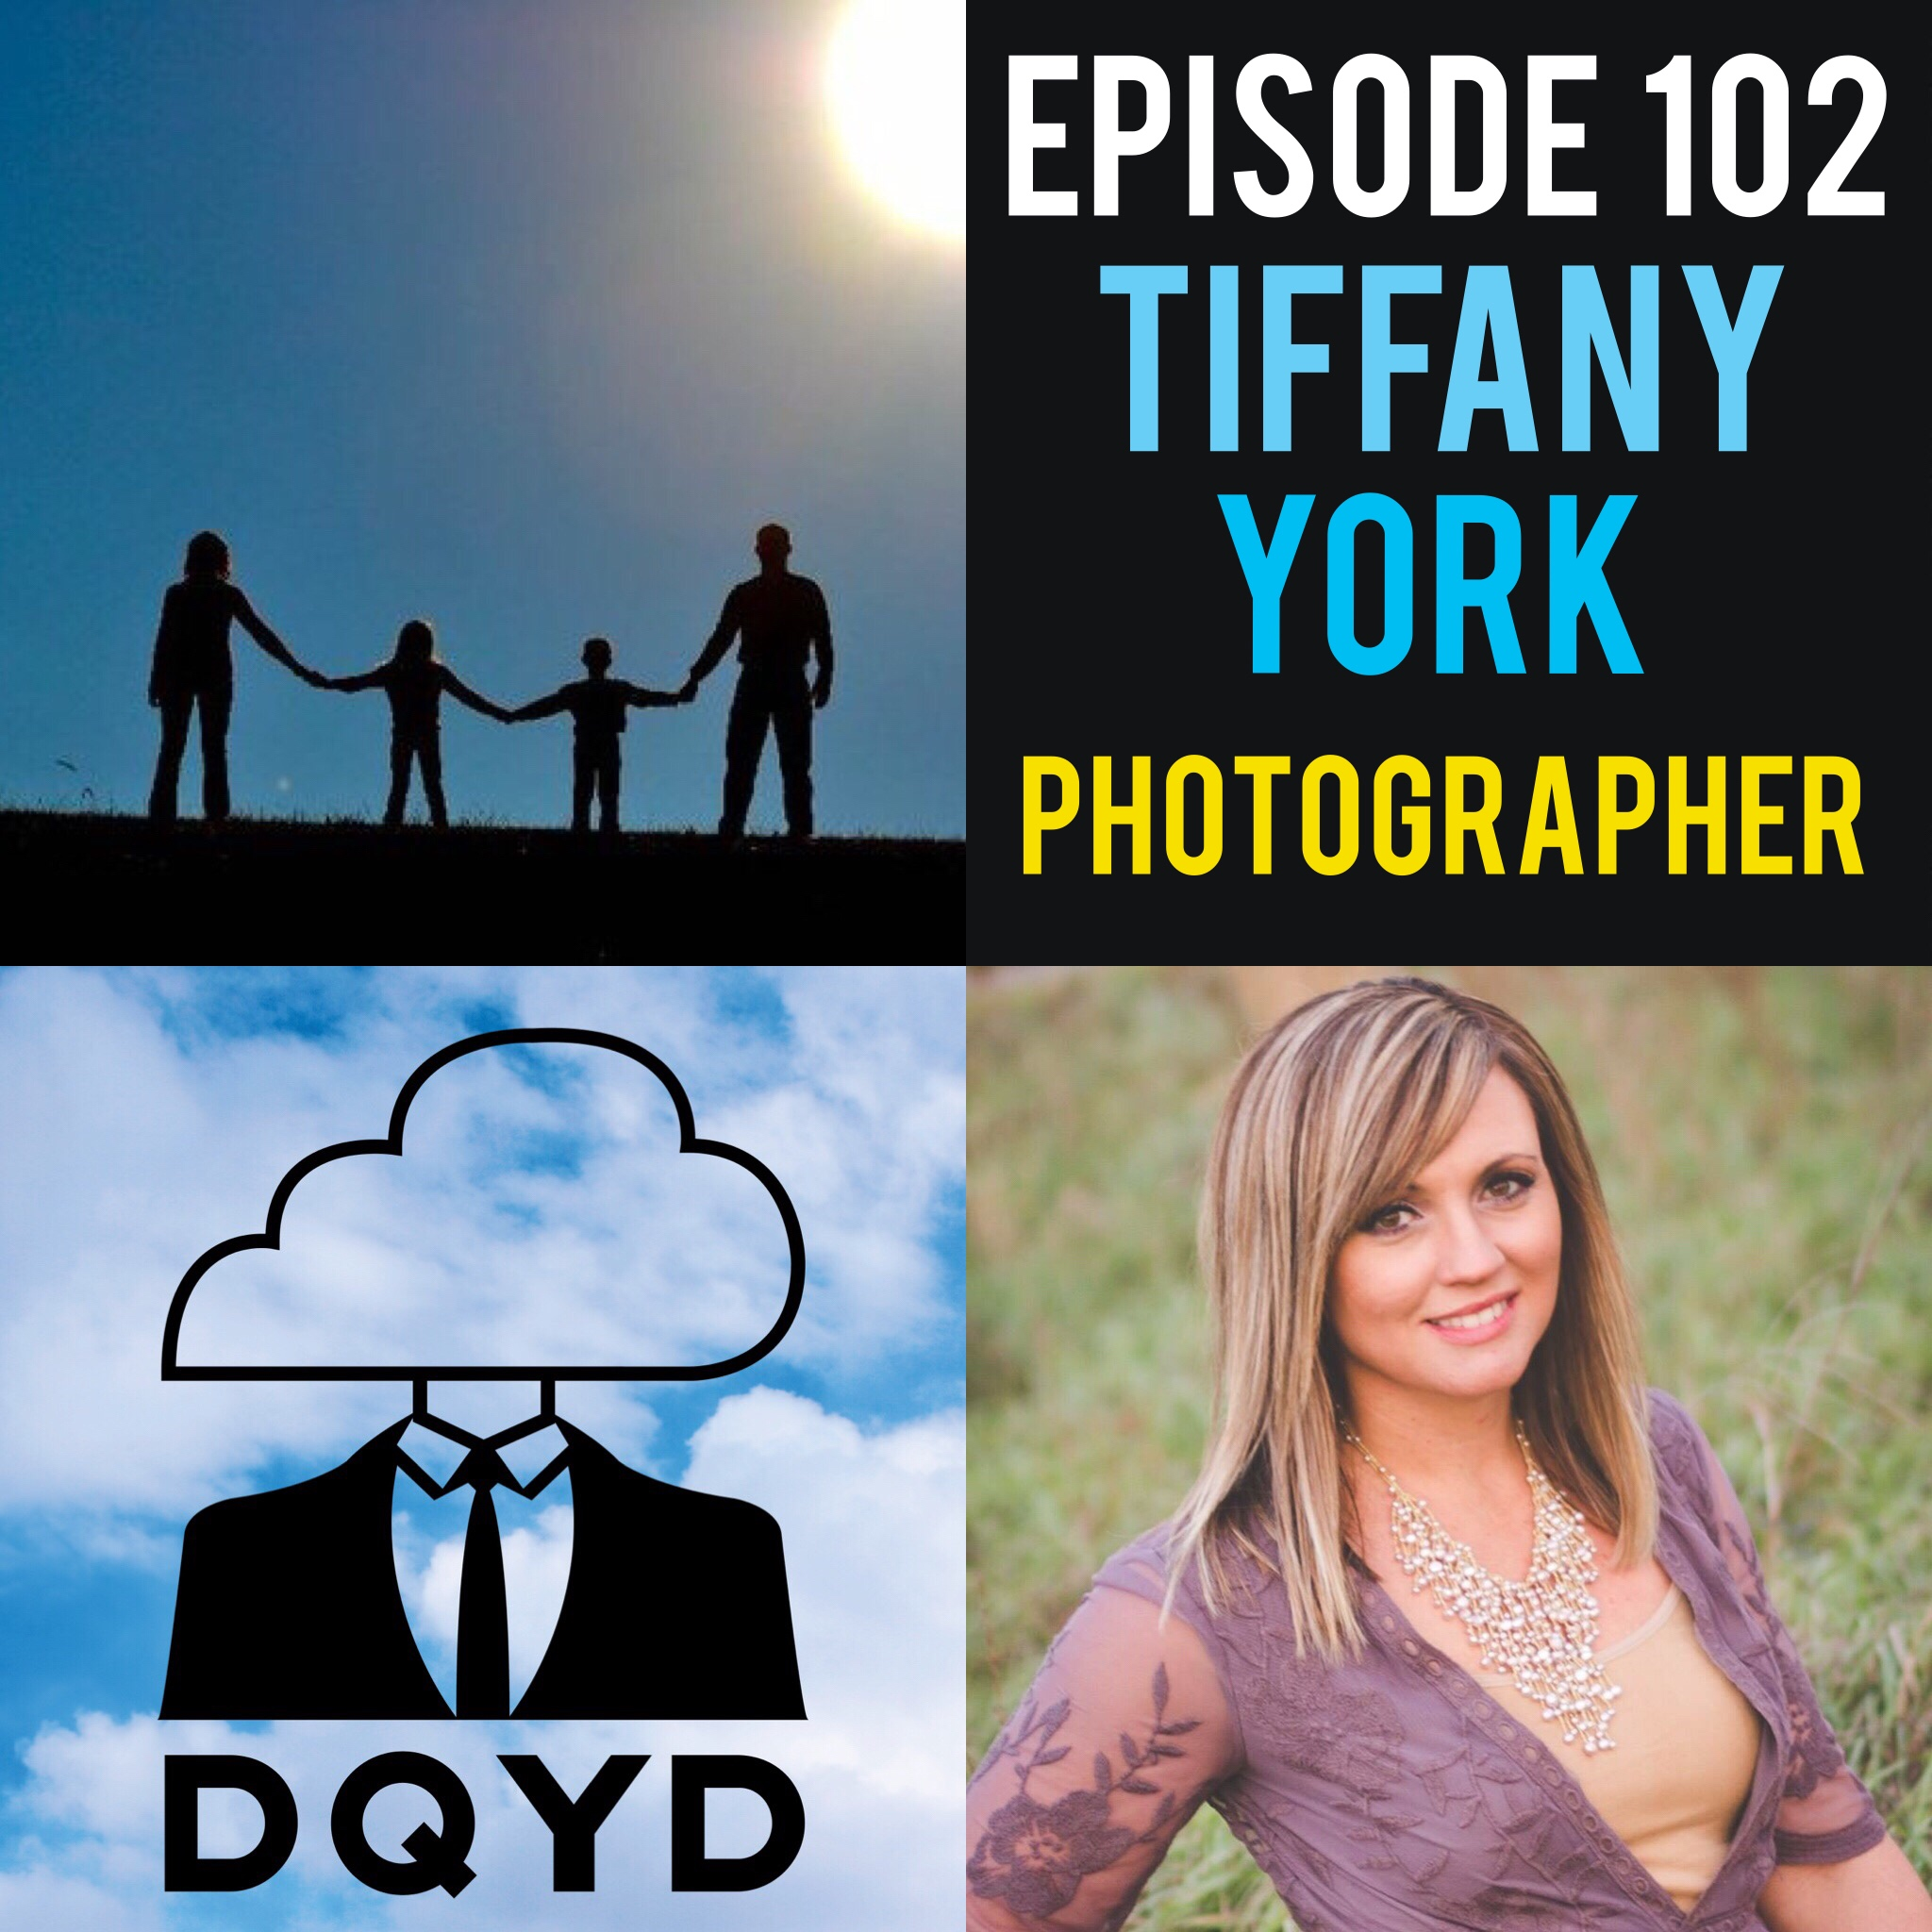 """Episode 102 with Photographer: Tiffany York! Owner of the excellent Penelope Belle Photography, Tiffany has captured hundreds of people's greatest memories on film. From events to photoshoots she has developed a unique style that has won her """"best of"""" Evansville. Check it out for yourself!  http://penelopebellephotography.zenfolio.com/   Song of the week is """"The Calm"""" by Kelo Kedadafi. Wonderful production matched by great lyricism, Kelo is a rapper to surely add to your playlist. https://soundcloud.com/tyrone-northington-2"""